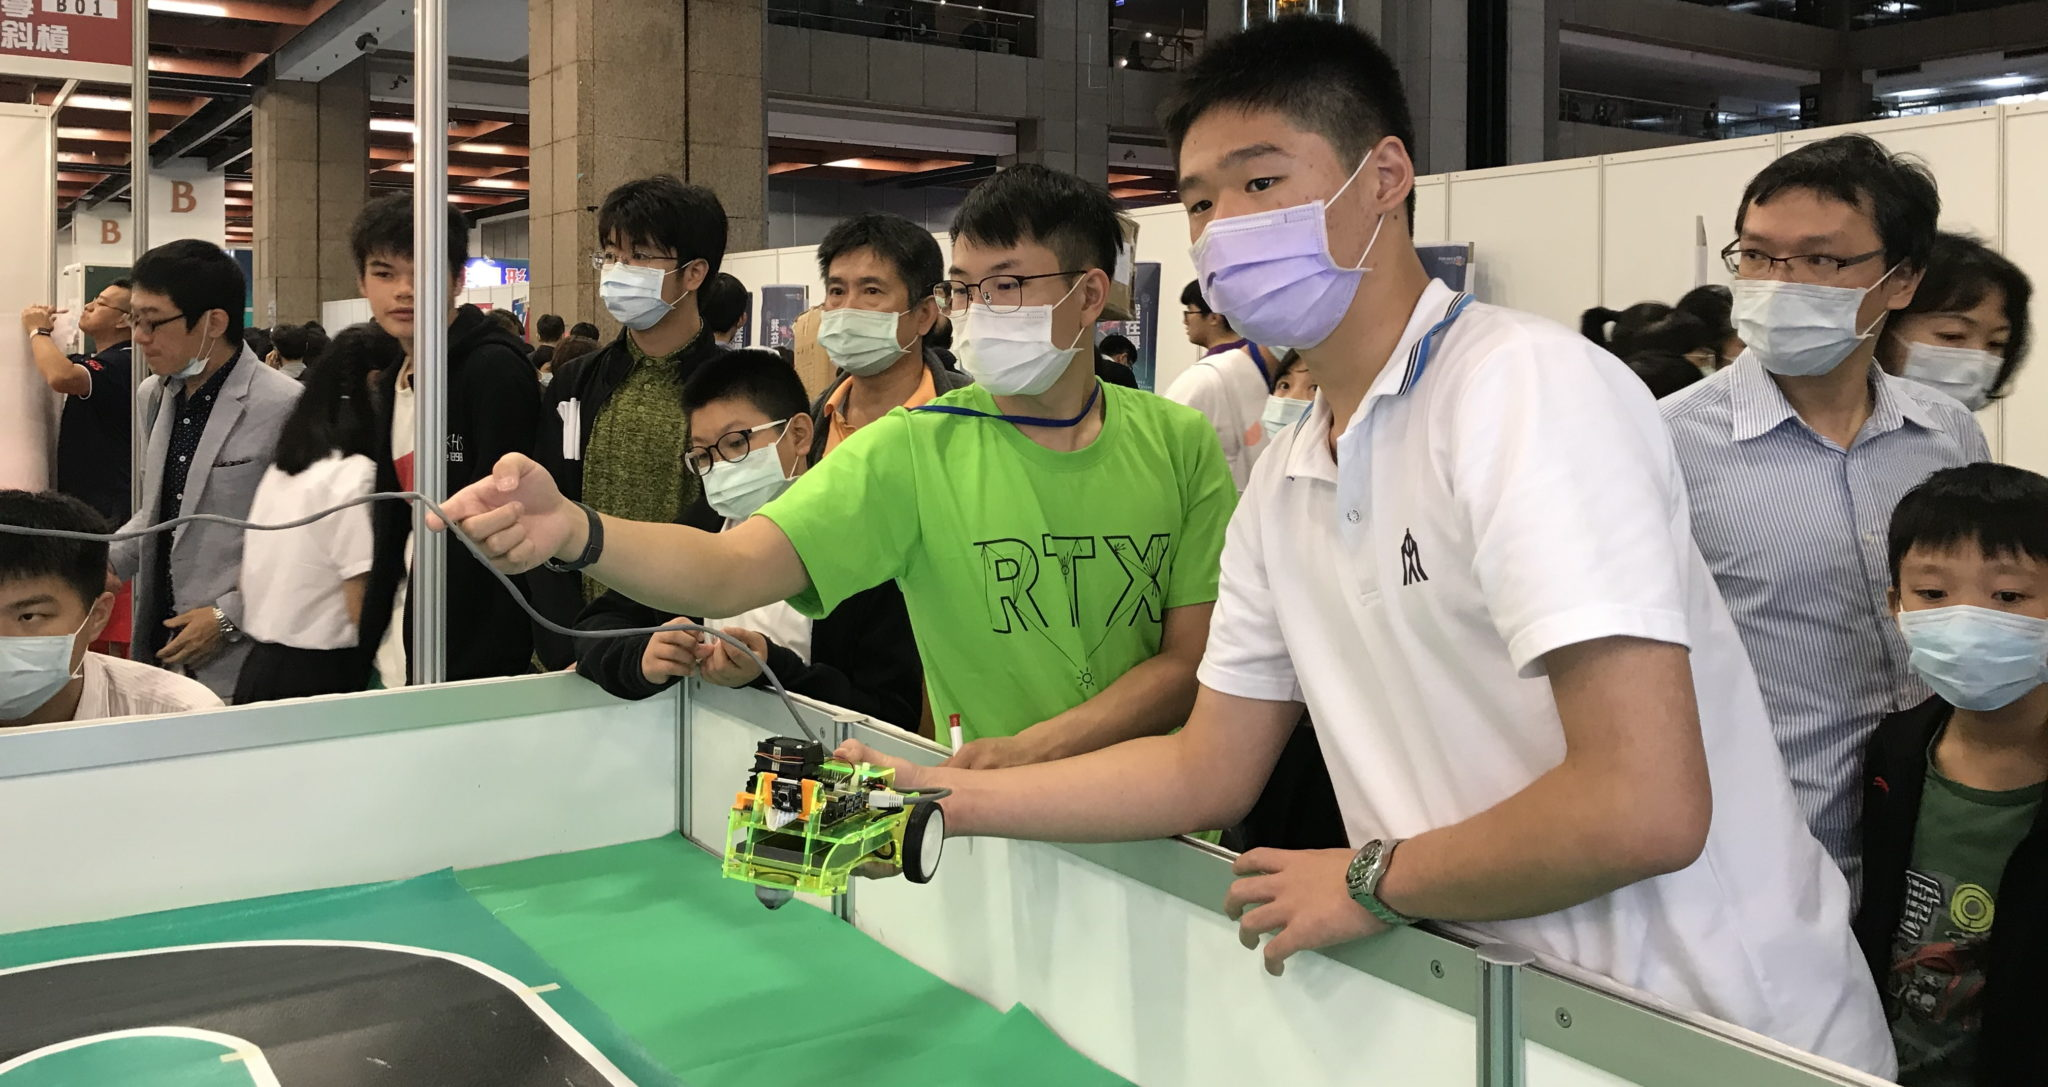 A Sparkle in Their AIs: Students Worldwide Rev Robots with Jetson Nano